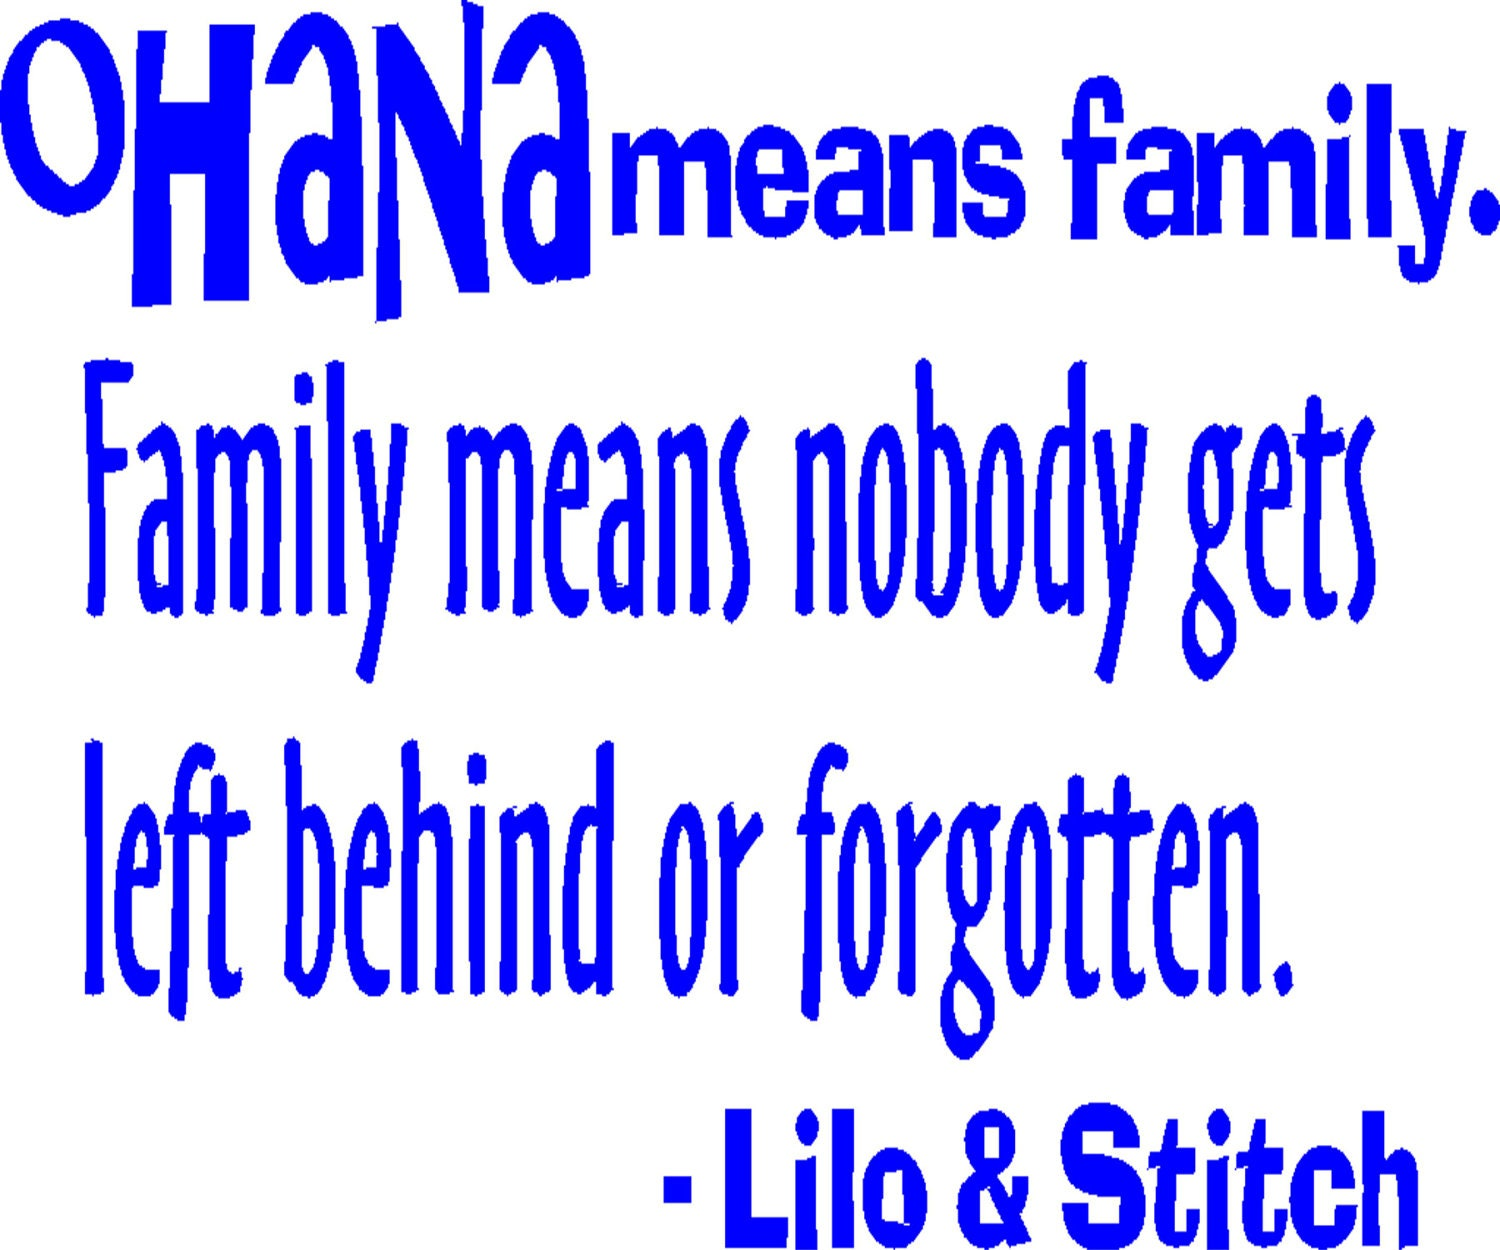 Lilo And Stitch Quotes Ohana Means FamilyLilo And Stitch Quotes